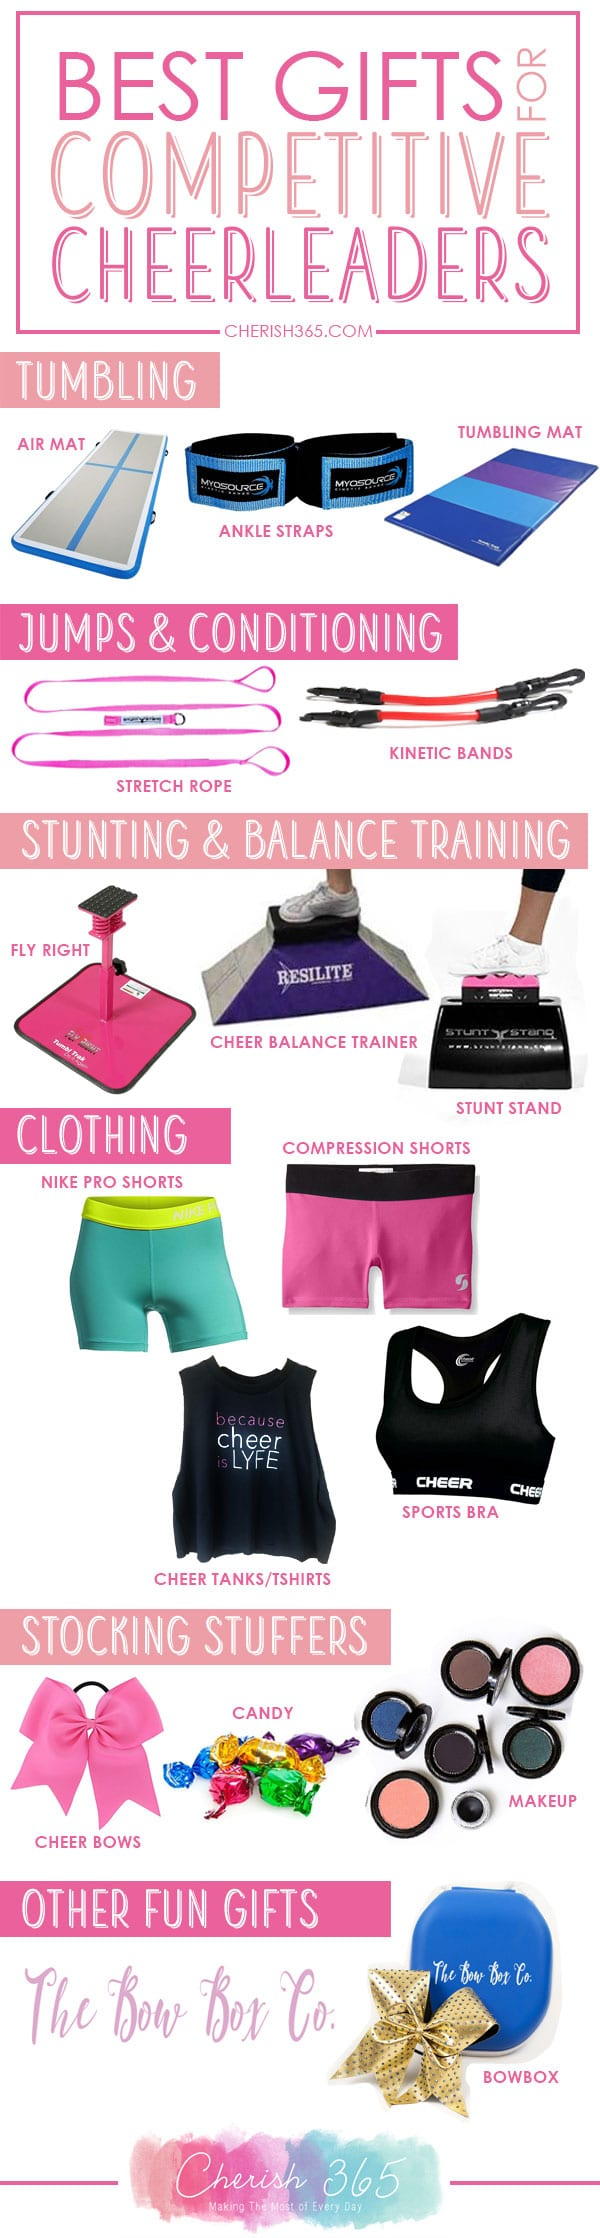 Christmas Gifts for Competitive Cheerleaders: An All Star Cheer Gift ...